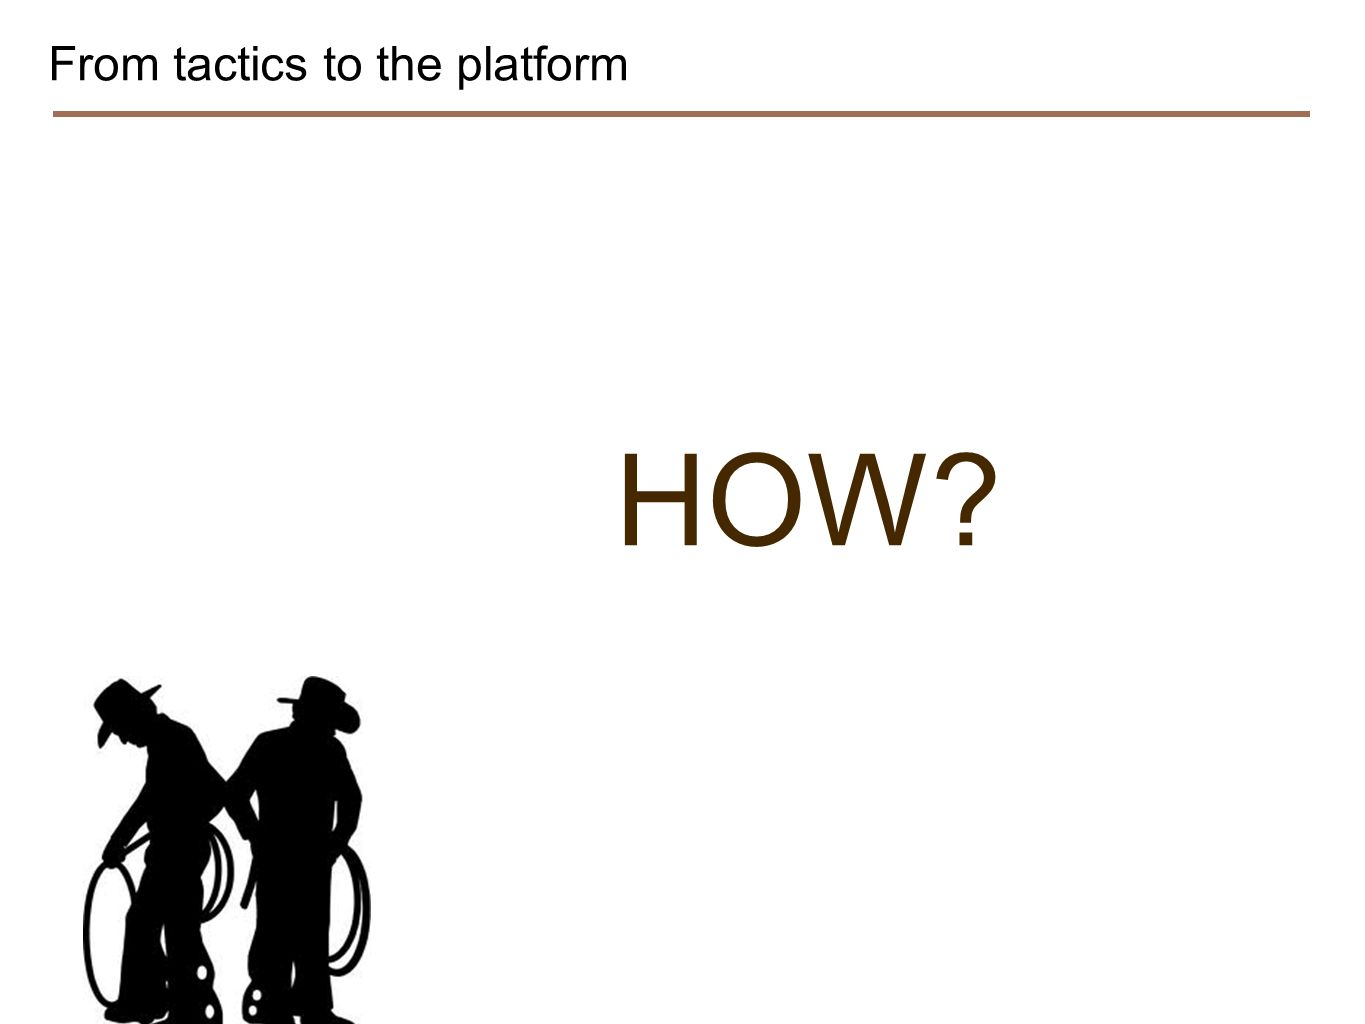 From tactics to the platform HOW